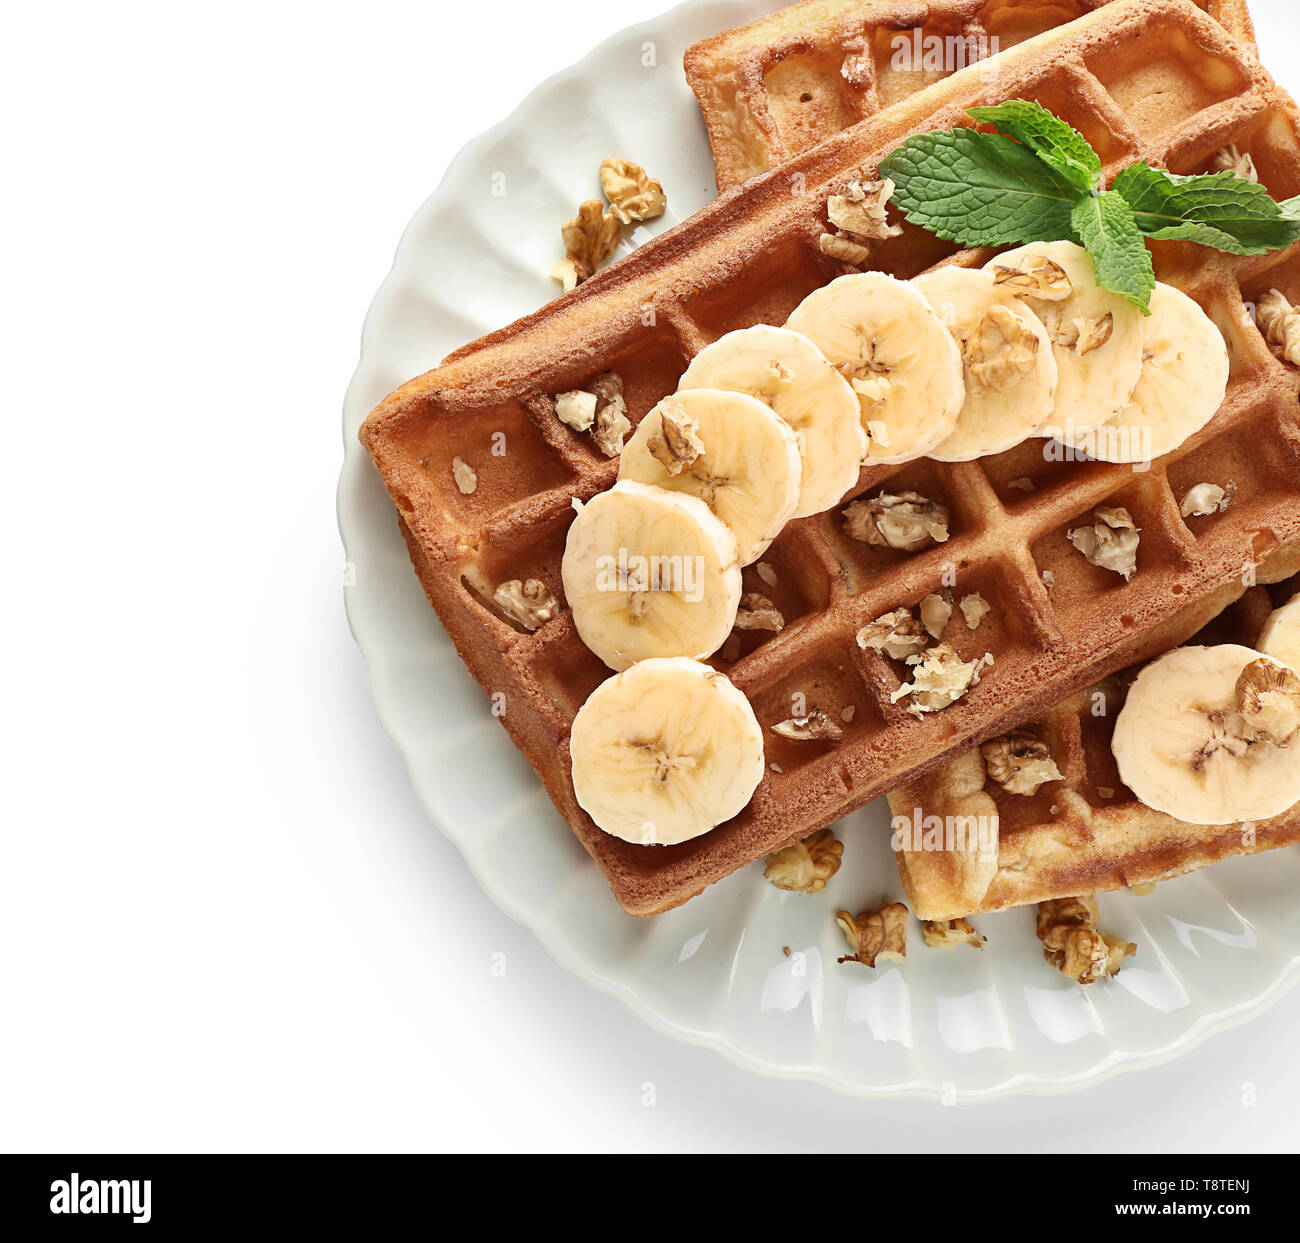 Delicious waffles with banana slices and nuts on white background - Stock Image